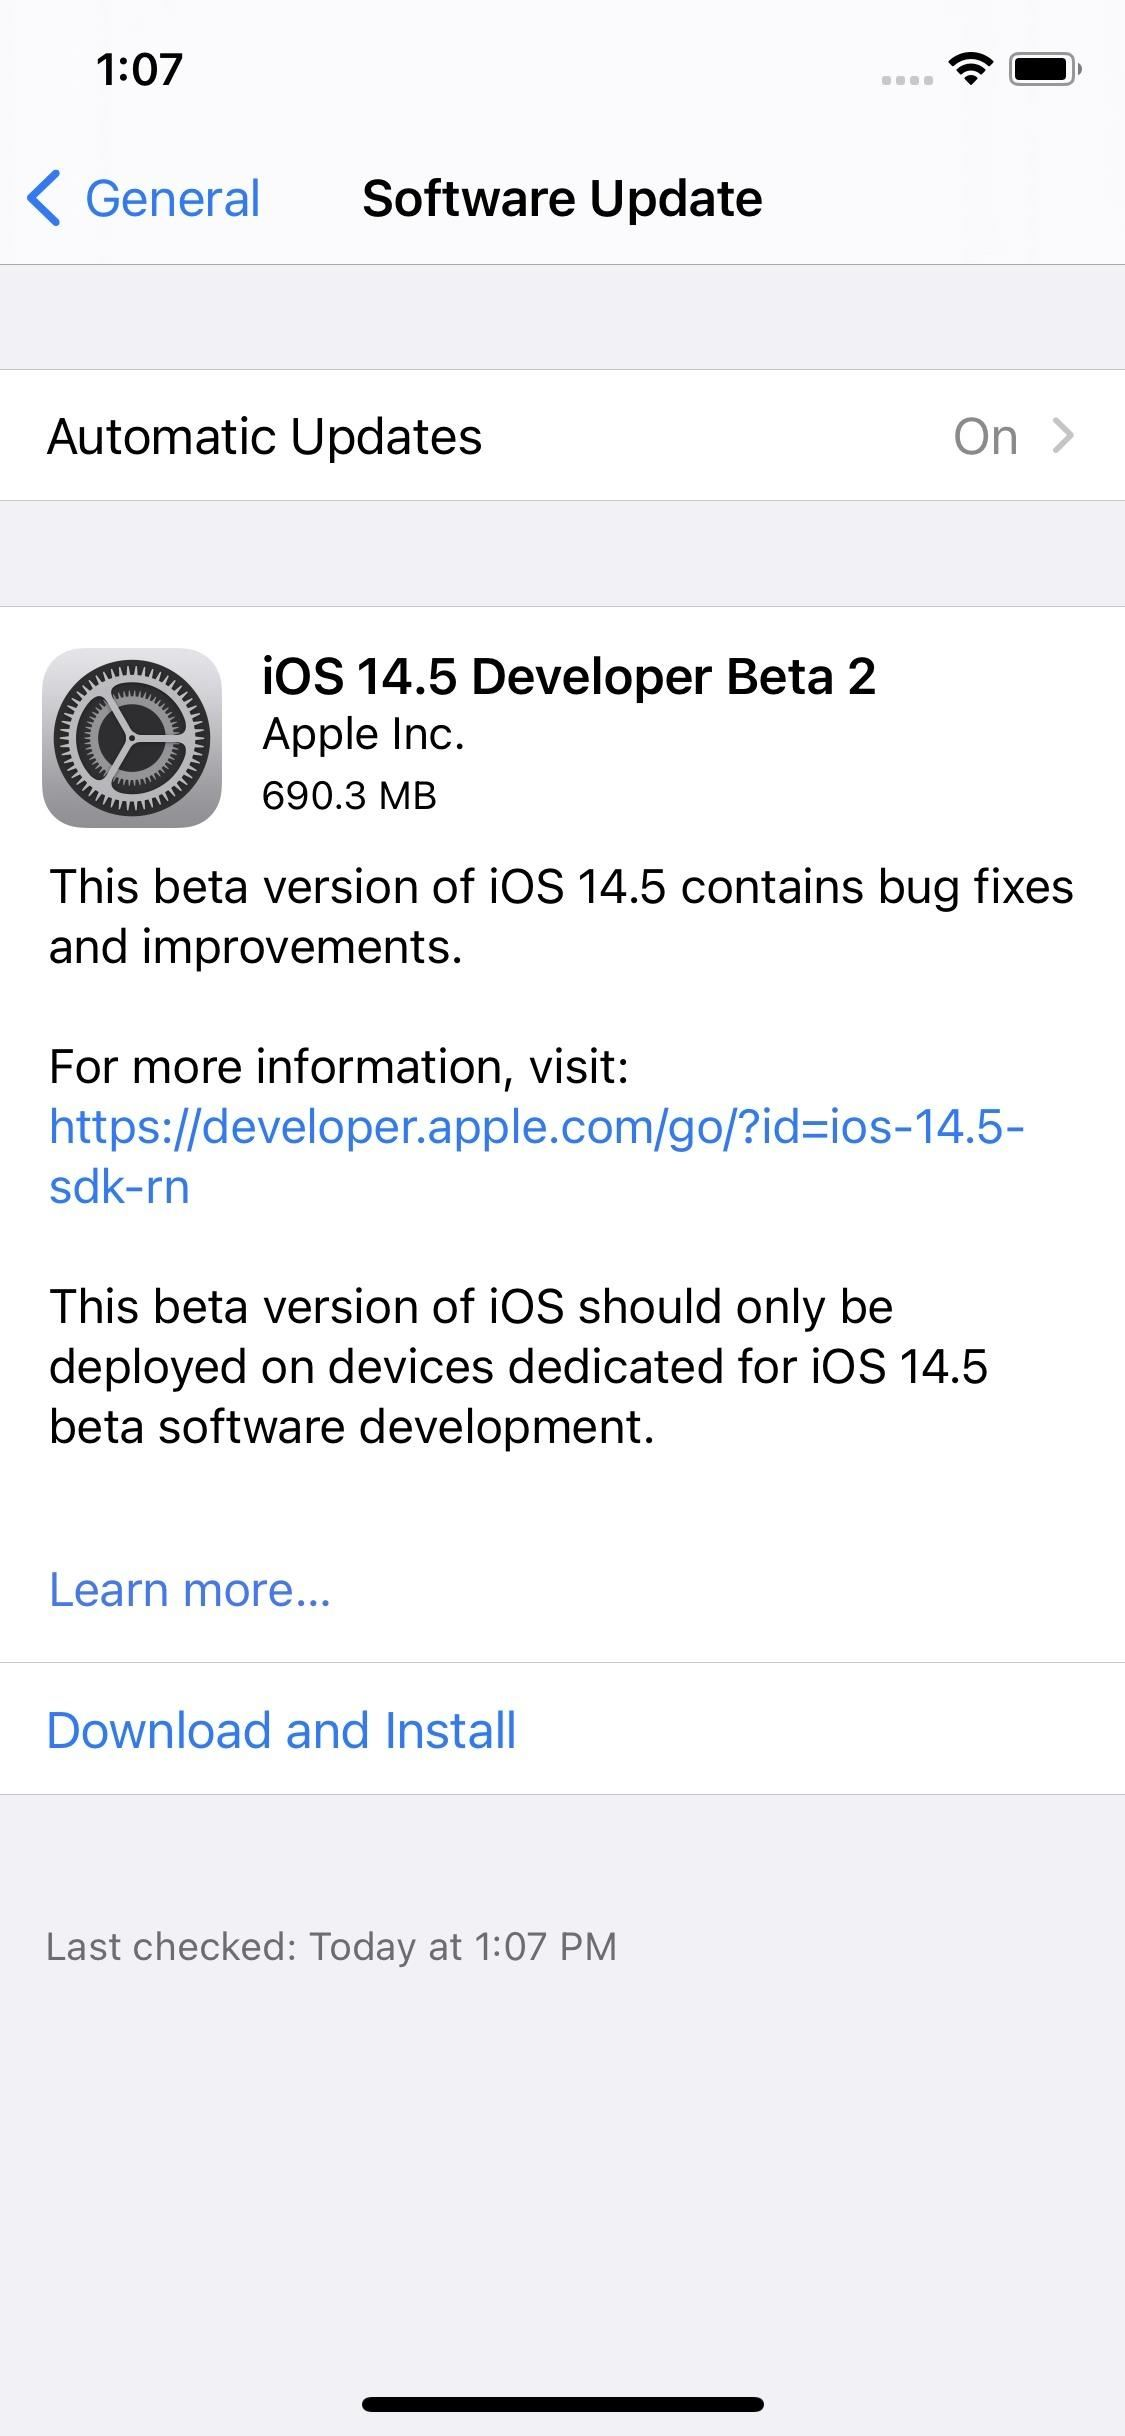 Apple Releases iOS 14.5 Developer Beta 2 for iPhone, Adds New Microphone Privacy Feature for Certain iPads